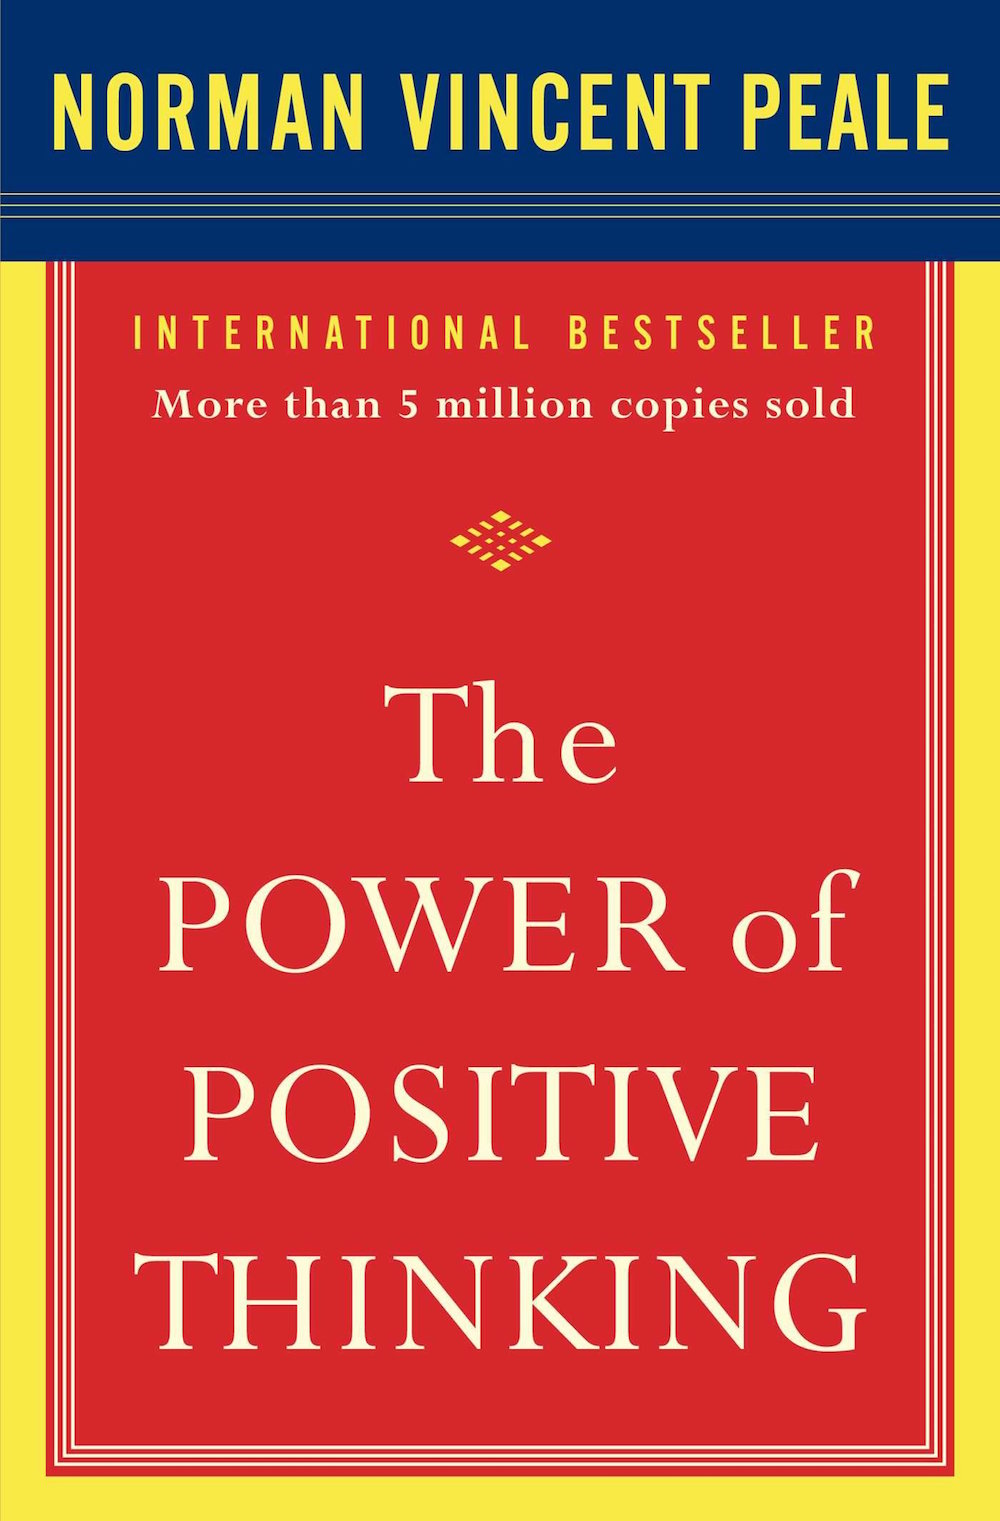 the power of positive thinking - by Norman Vincent PealeThe Power of Positive Thinking has helped millions of men and women to achieve fulfillment in their lives. In this phenomenal bestseller, Dr. Peale demonstrates the power of faith in action. With the practical techniques outlined in this book, you can energize your life — and give yourself the initiative needed to carry out your ambitions and hopes. You'll learn how to:• believe in yourself and in everything you do• build new power and determination•develop the power to reach your goals• break the worry habit and achieve a relaxed life• improve your personal and professional relationships• assume control over your circumstances• be kind to yourself